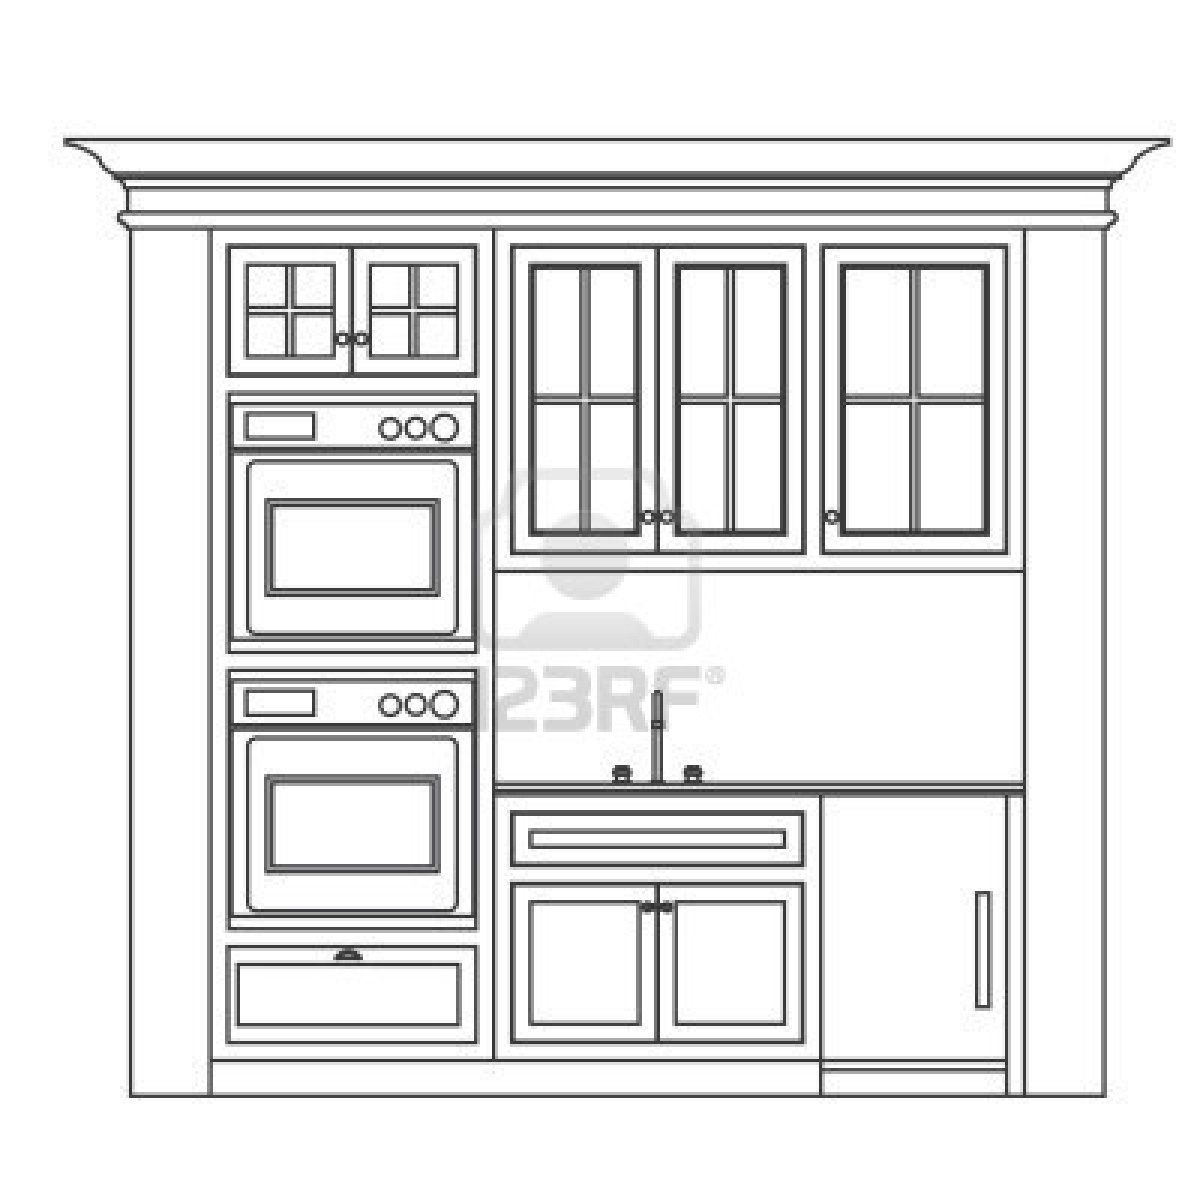 Beau Kitchen Cabinet Design Drawing Kitchen Elevation Line Drawing Cabinets  Drawers Appliances LAaV6e9s